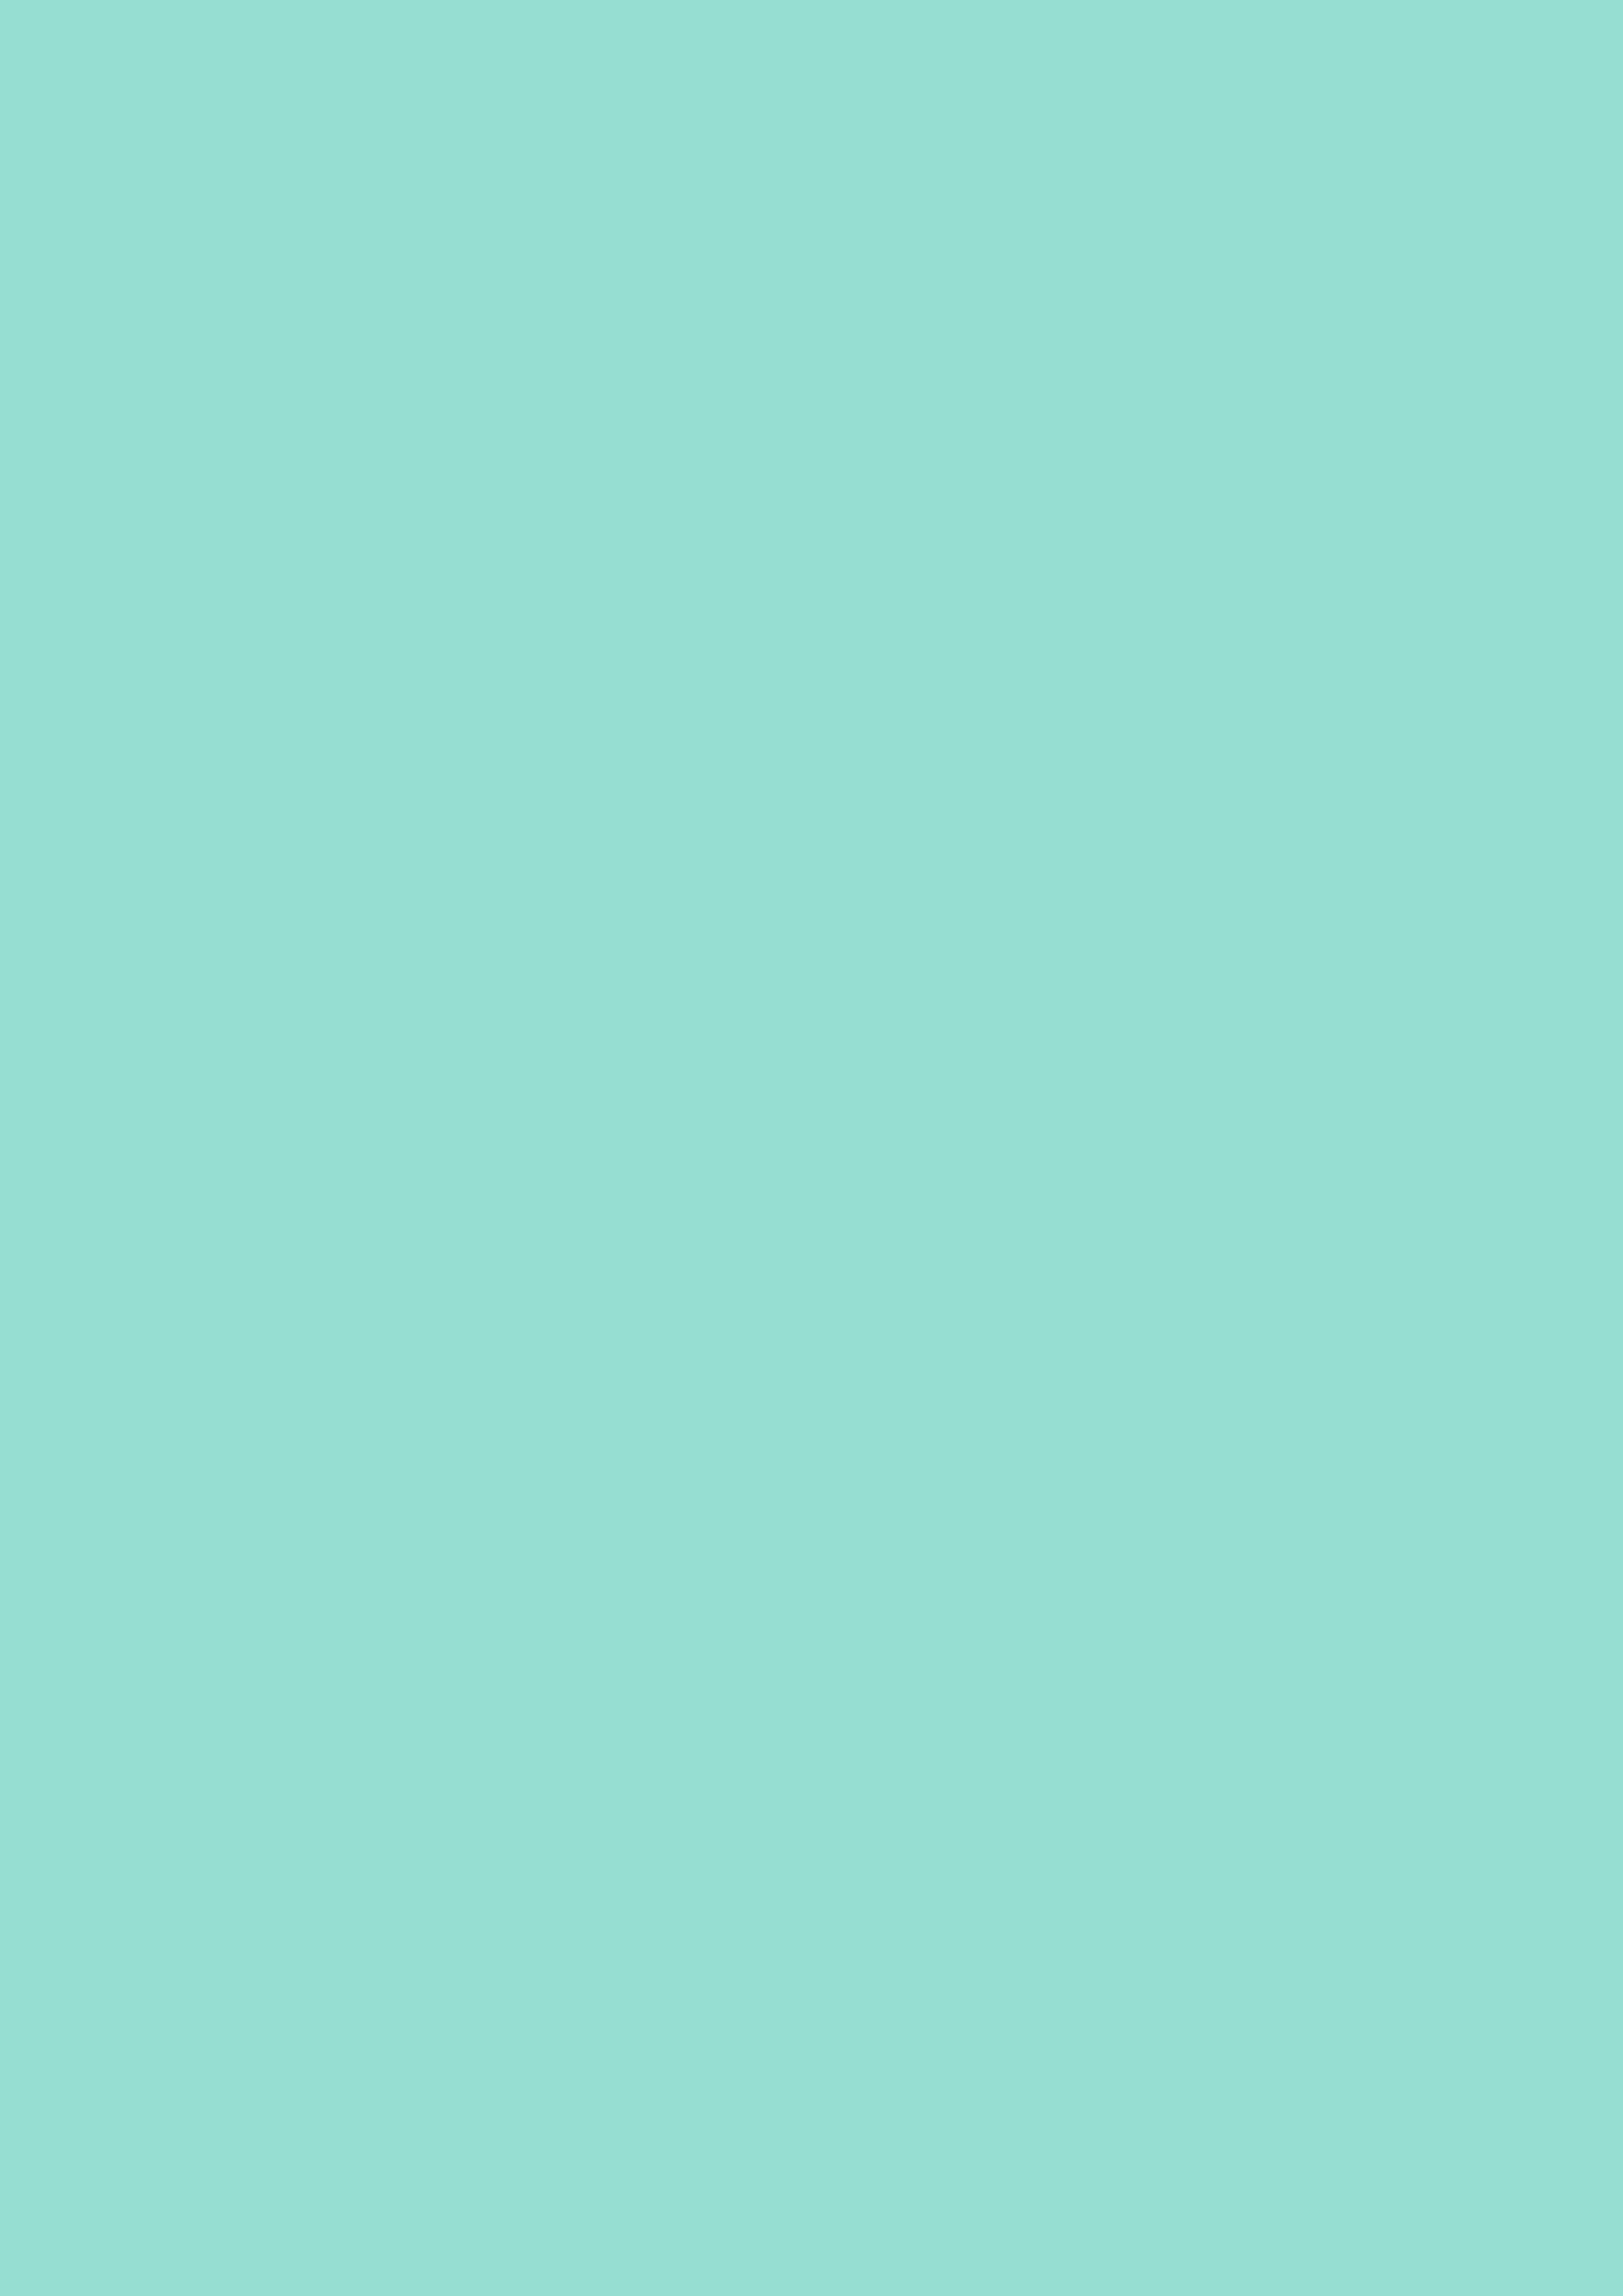 2480x3508 Pale Robin Egg Blue Solid Color Background